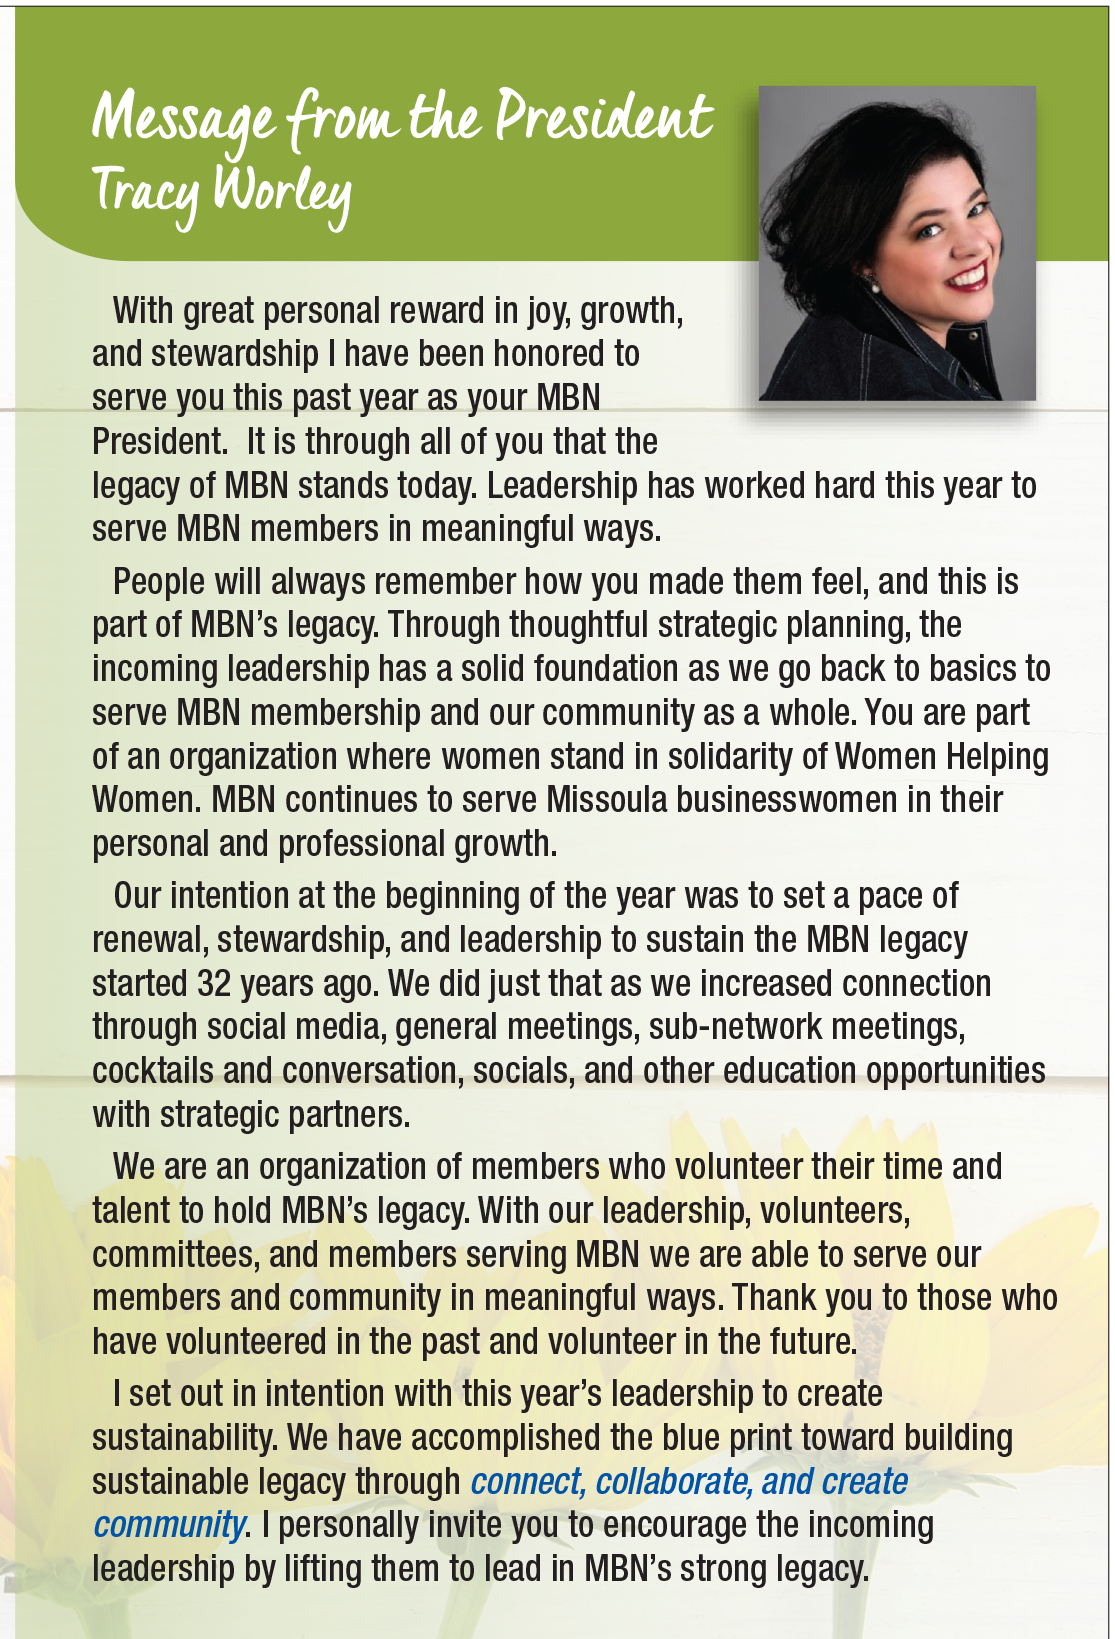 Message from Tracy Worley - MBN President